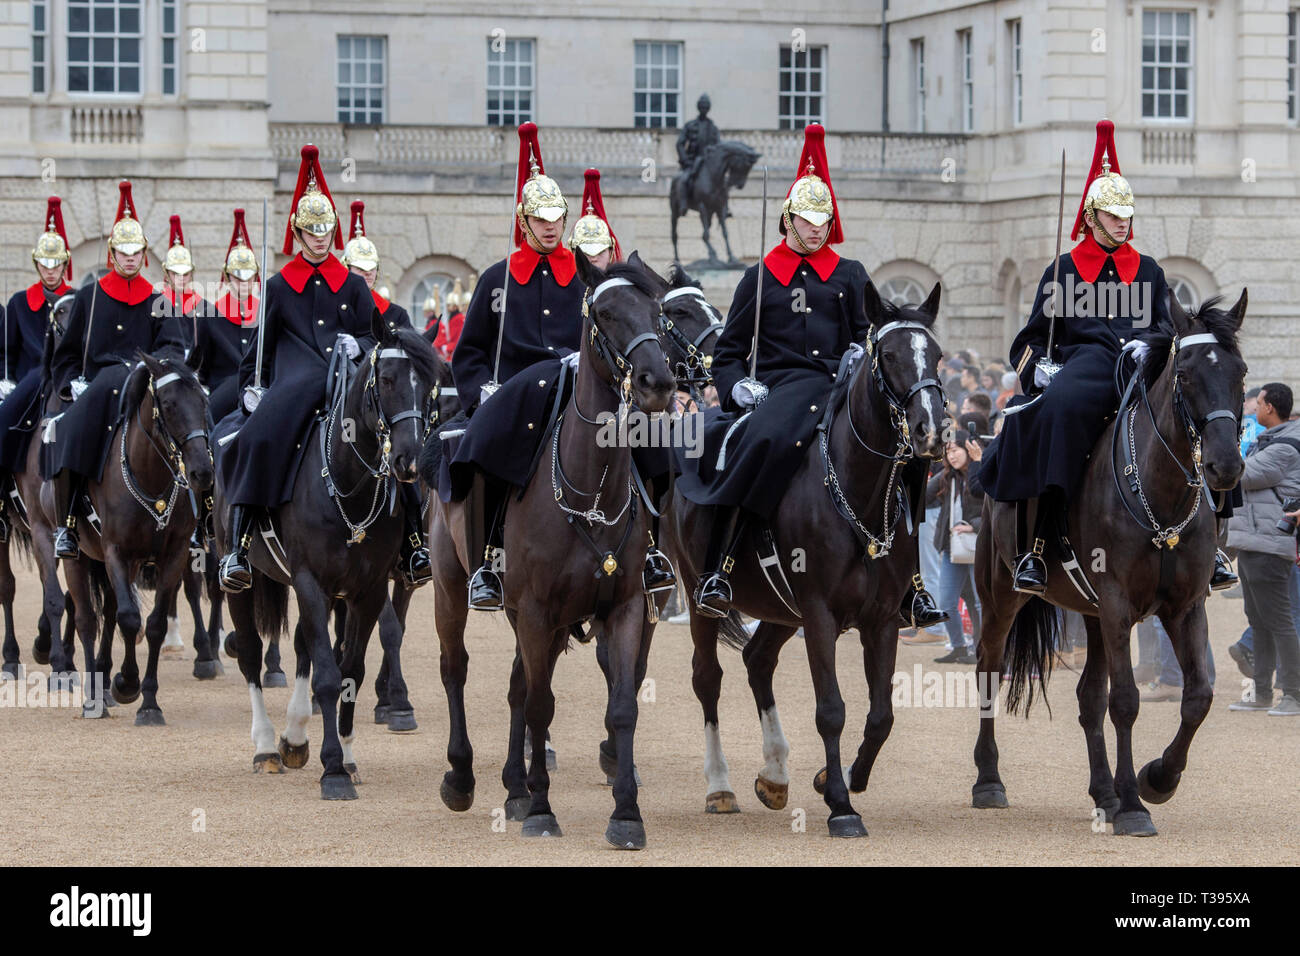 Household Cavalry in winter dress changing the guard, Horse Guards Parade, London, Saturday, March 23, 2019.Photo: David Rowland / One-Image.com Stock Photo